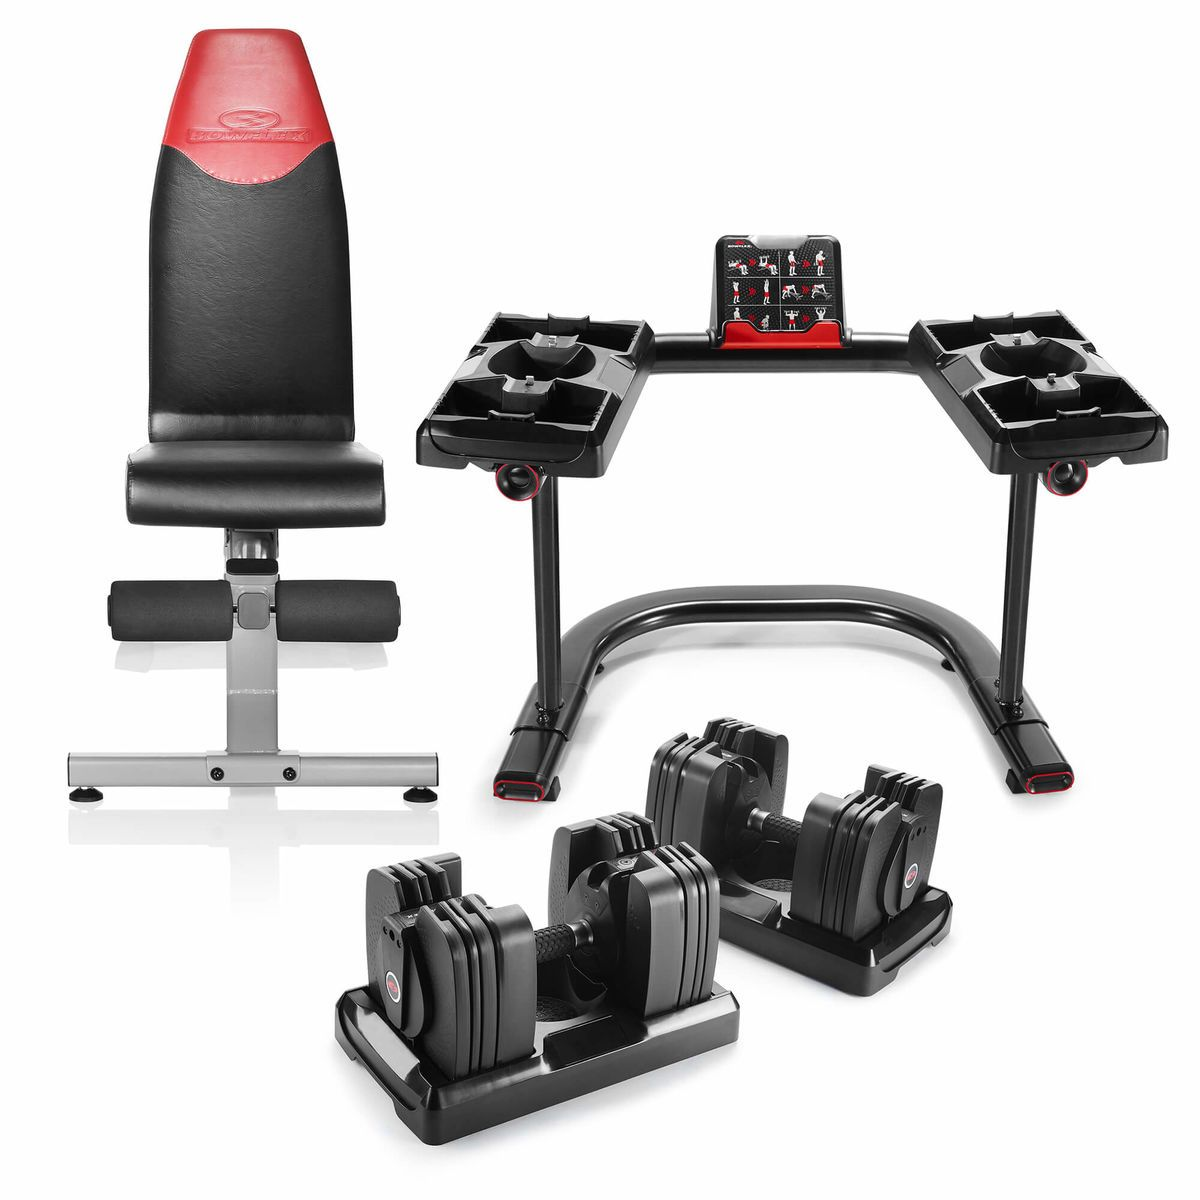 Bowflex Selecttech 560 Dumbbells Bundle For 599 Bowflex Bowflex Bench Dumbbells